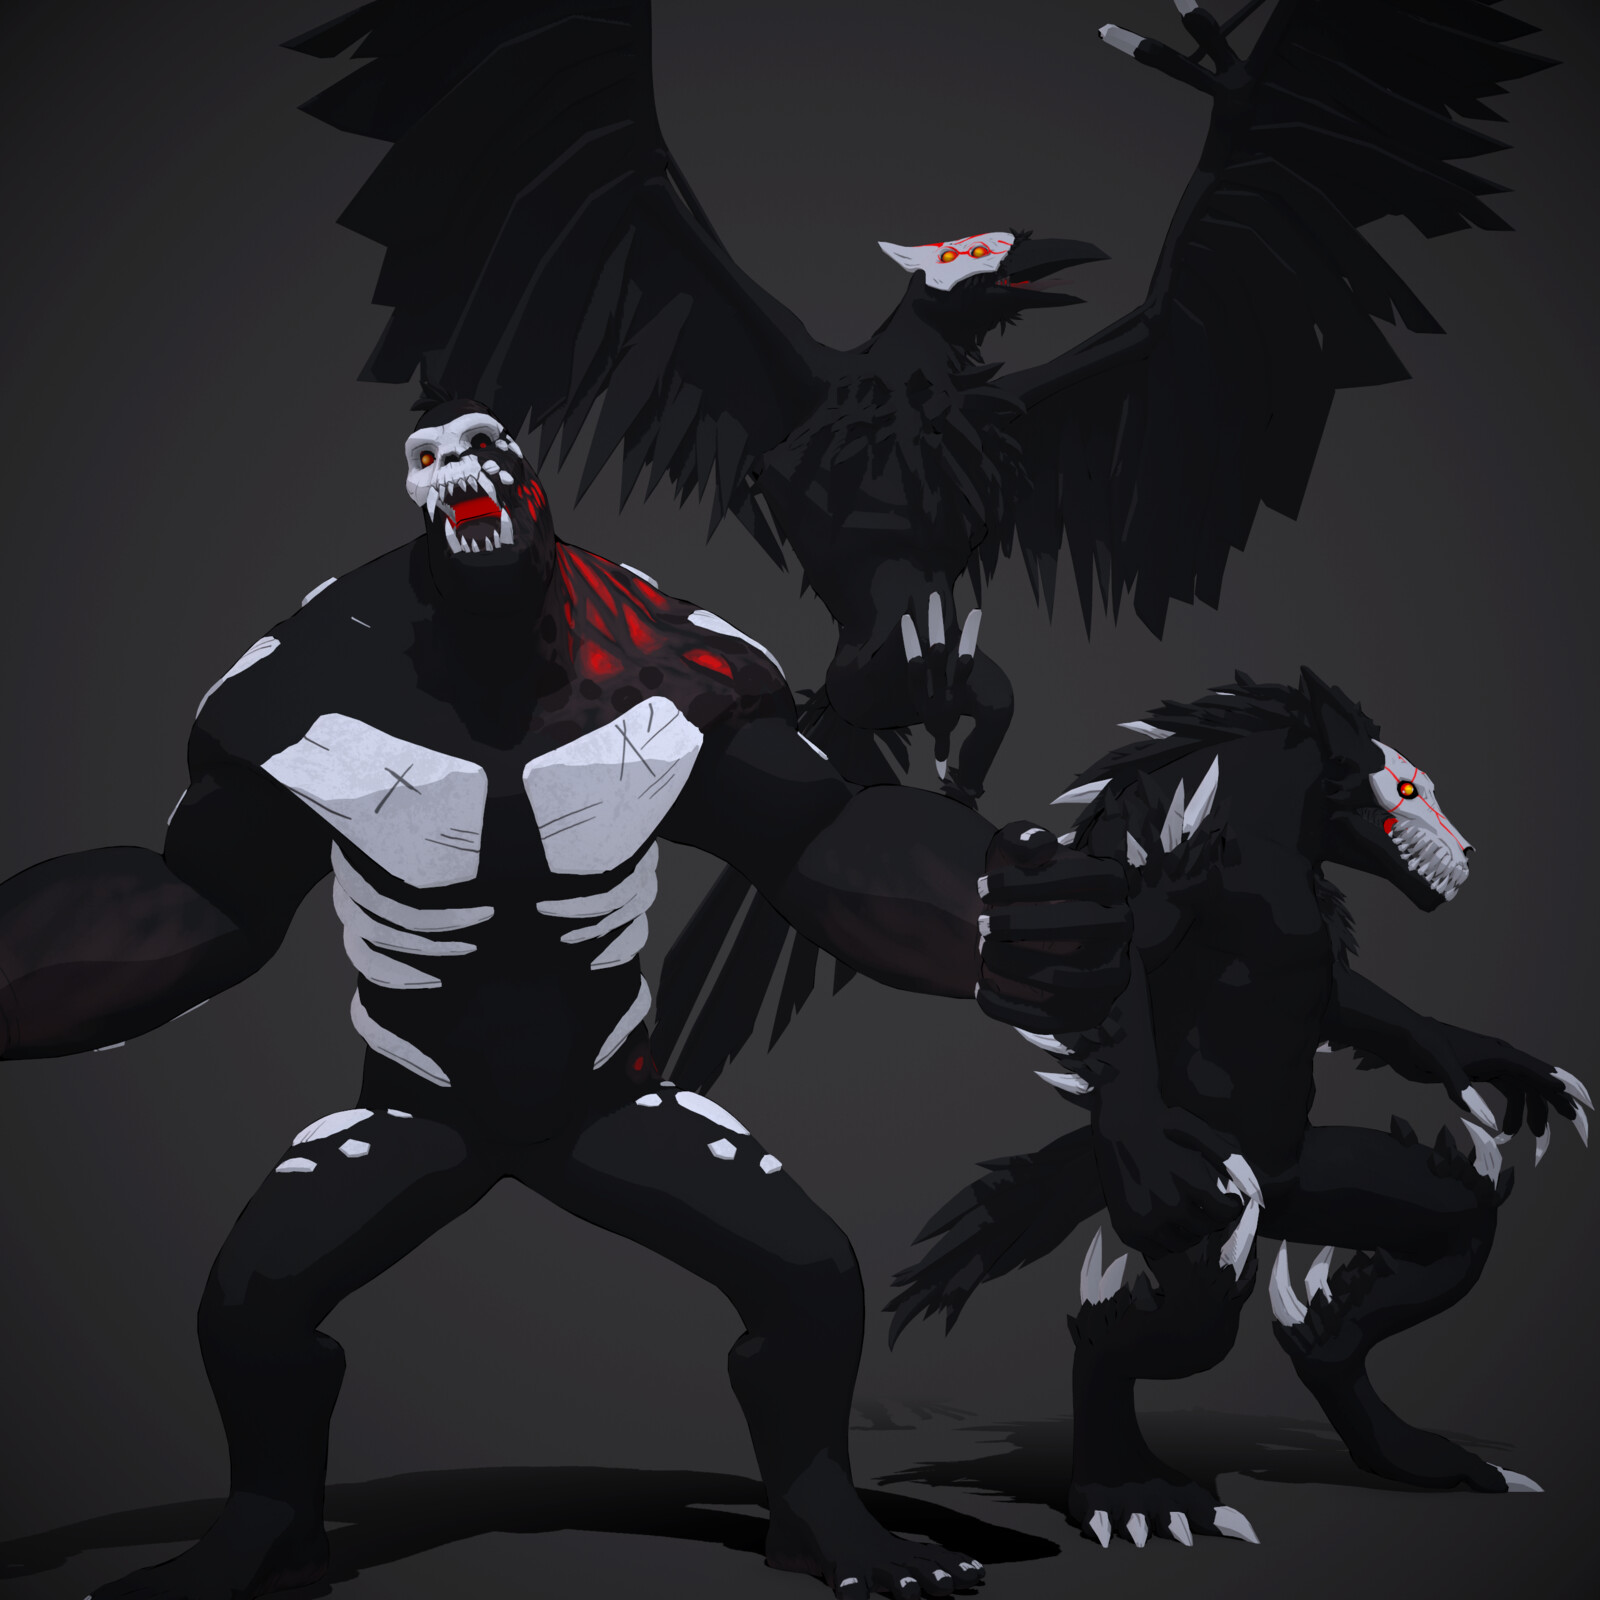 RWBY Grimm Monsters